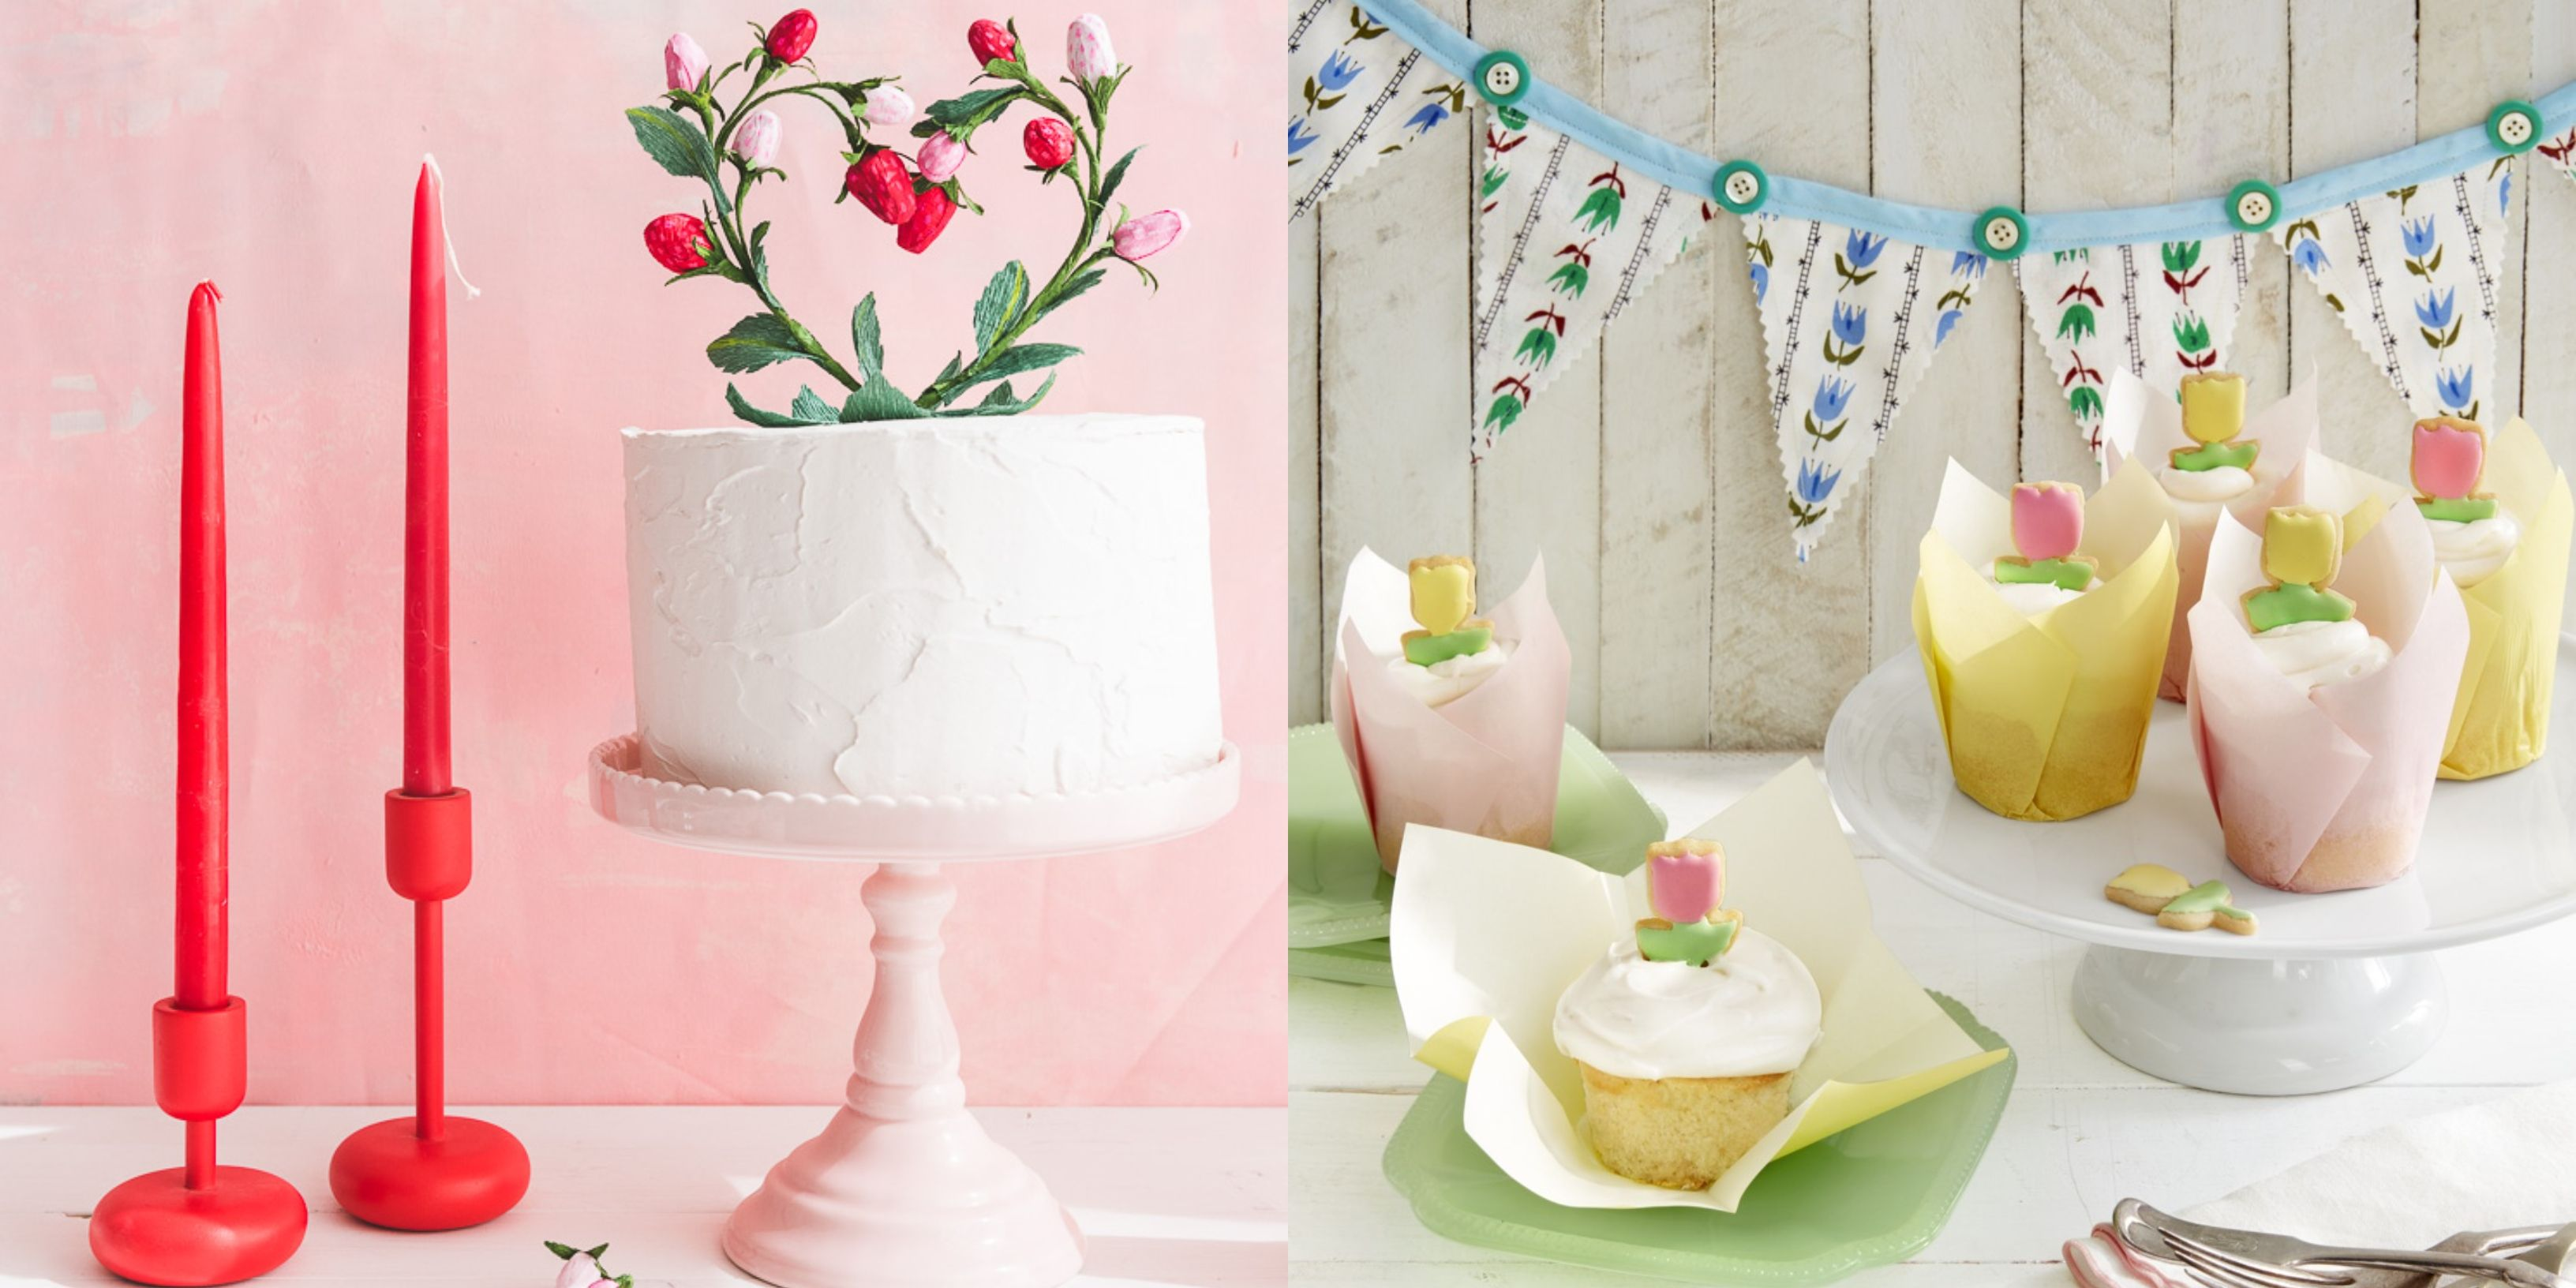 81bb91e0a1b 59 Best Bridal Shower Ideas - Fun Themes